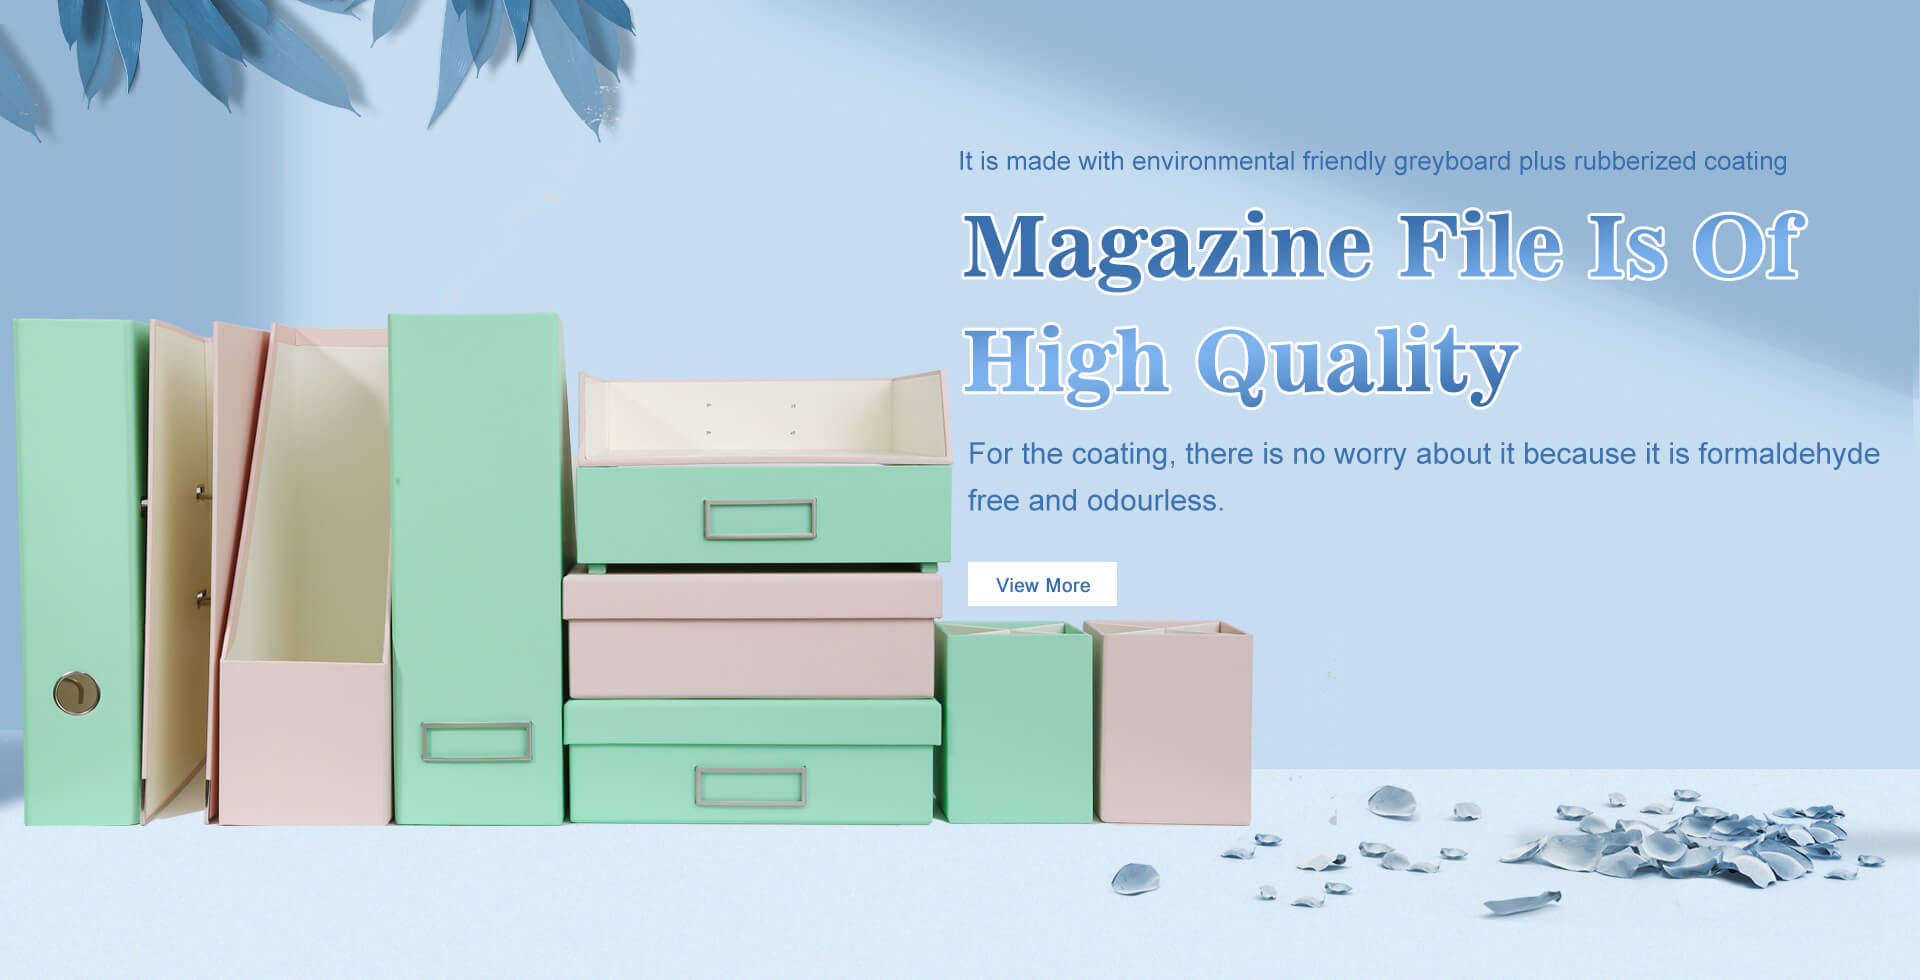 Magazine File with environmentally friendly materials and rubberized lamination. Zero Formaldehyde, No Smell.